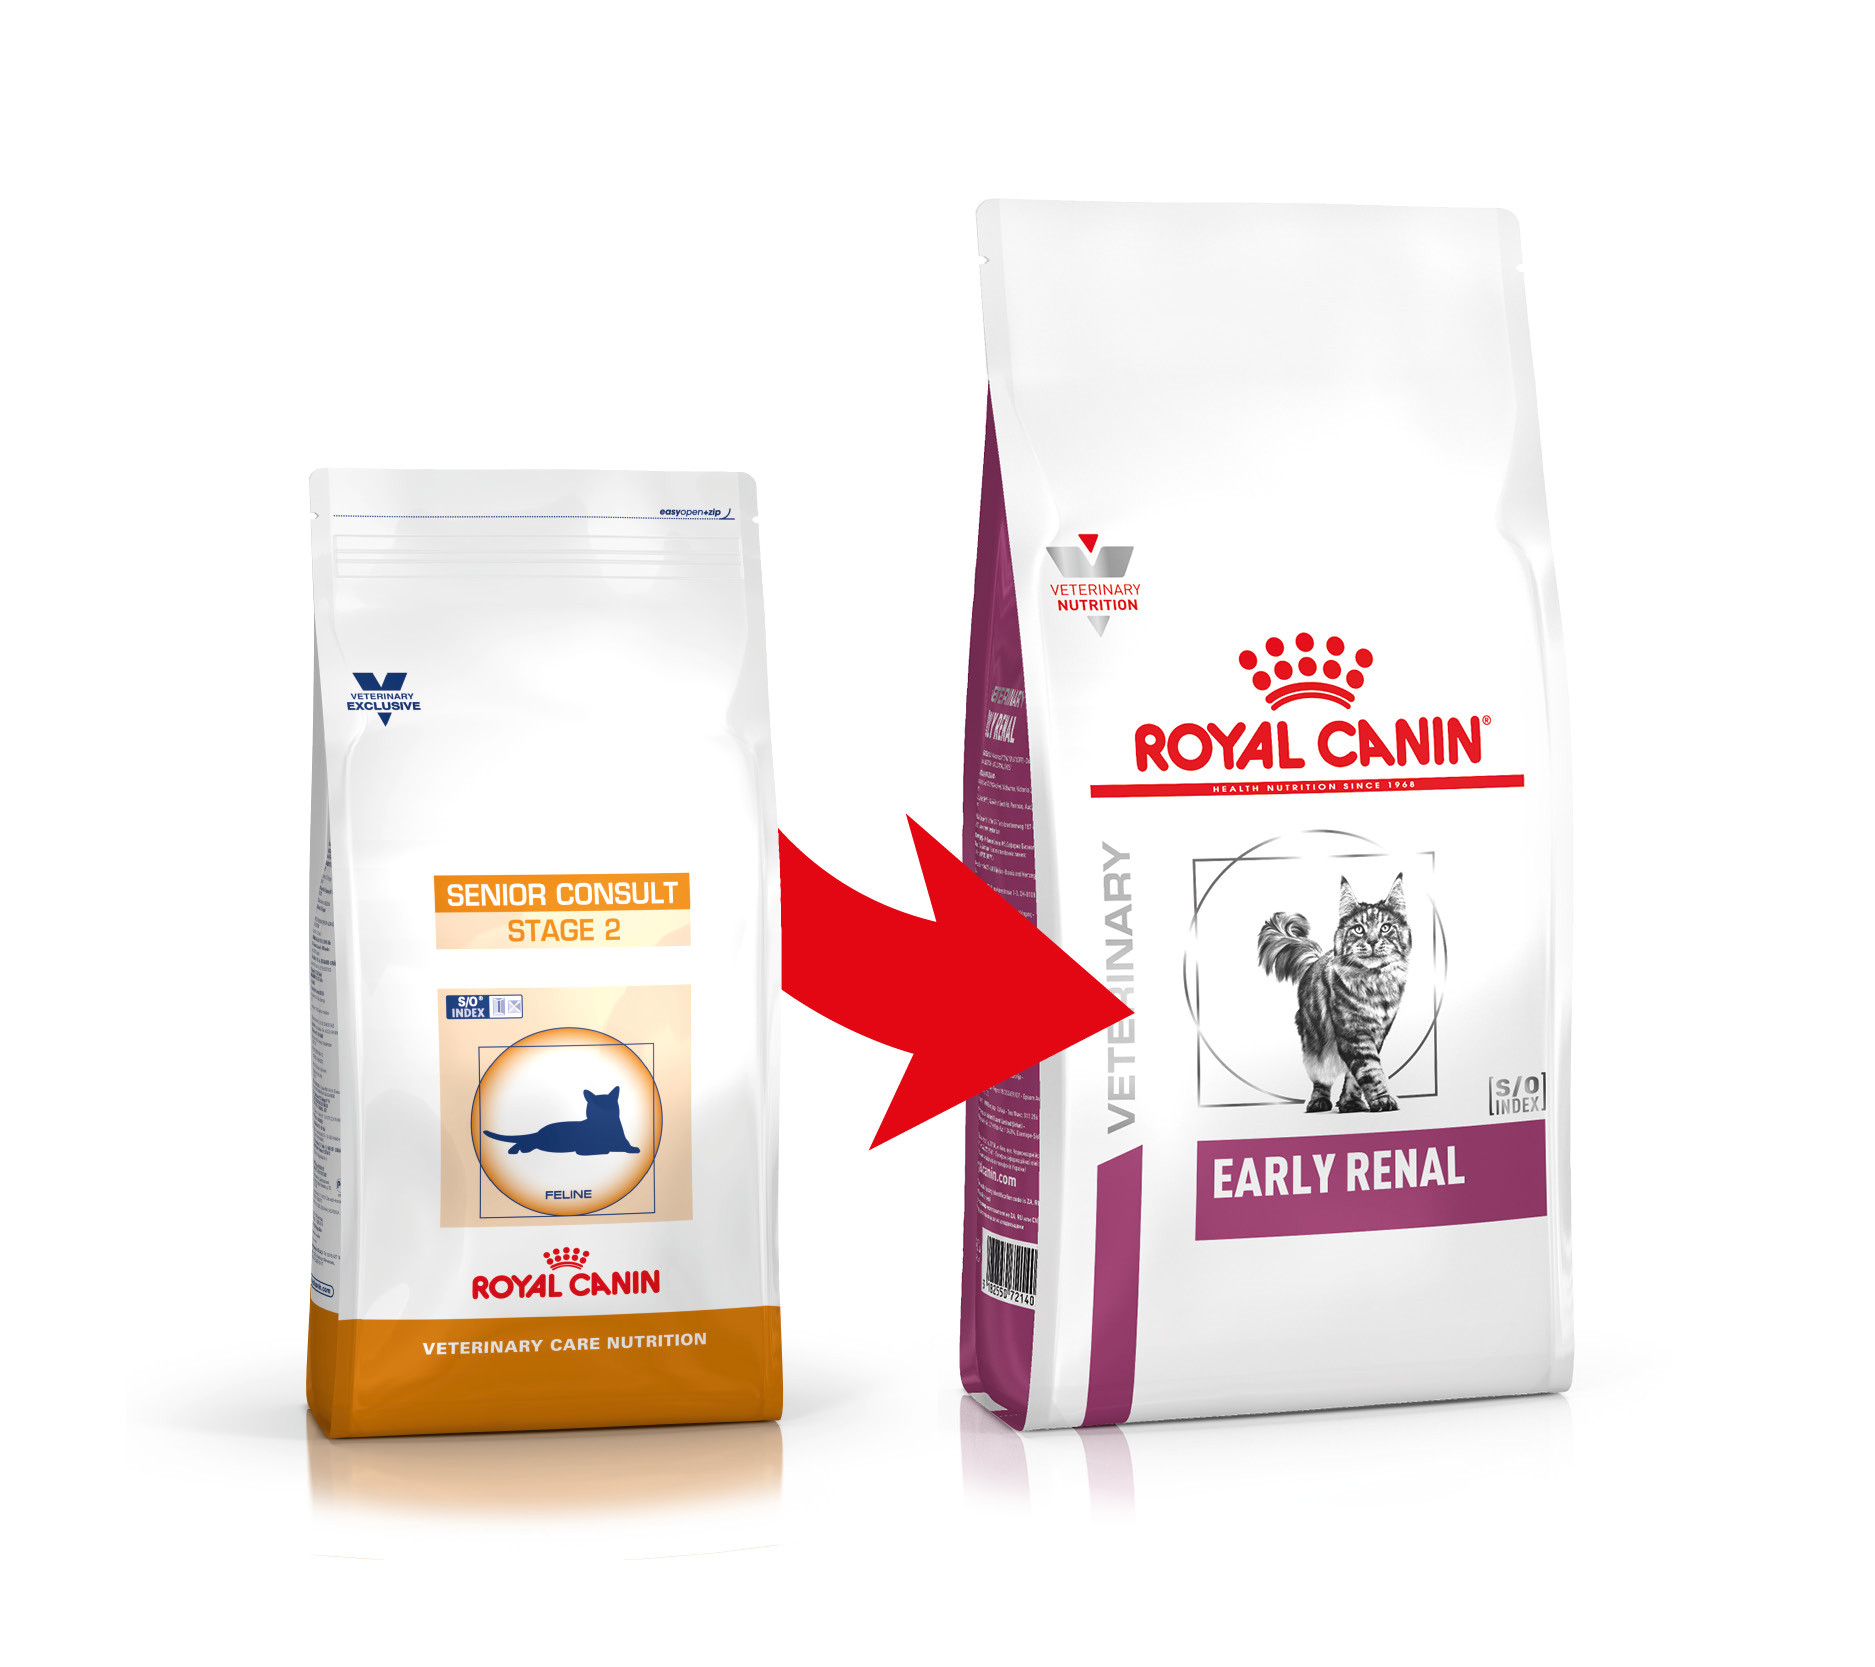 Royal Canin VCN Senior Consult Stage 2 Katzenfutter